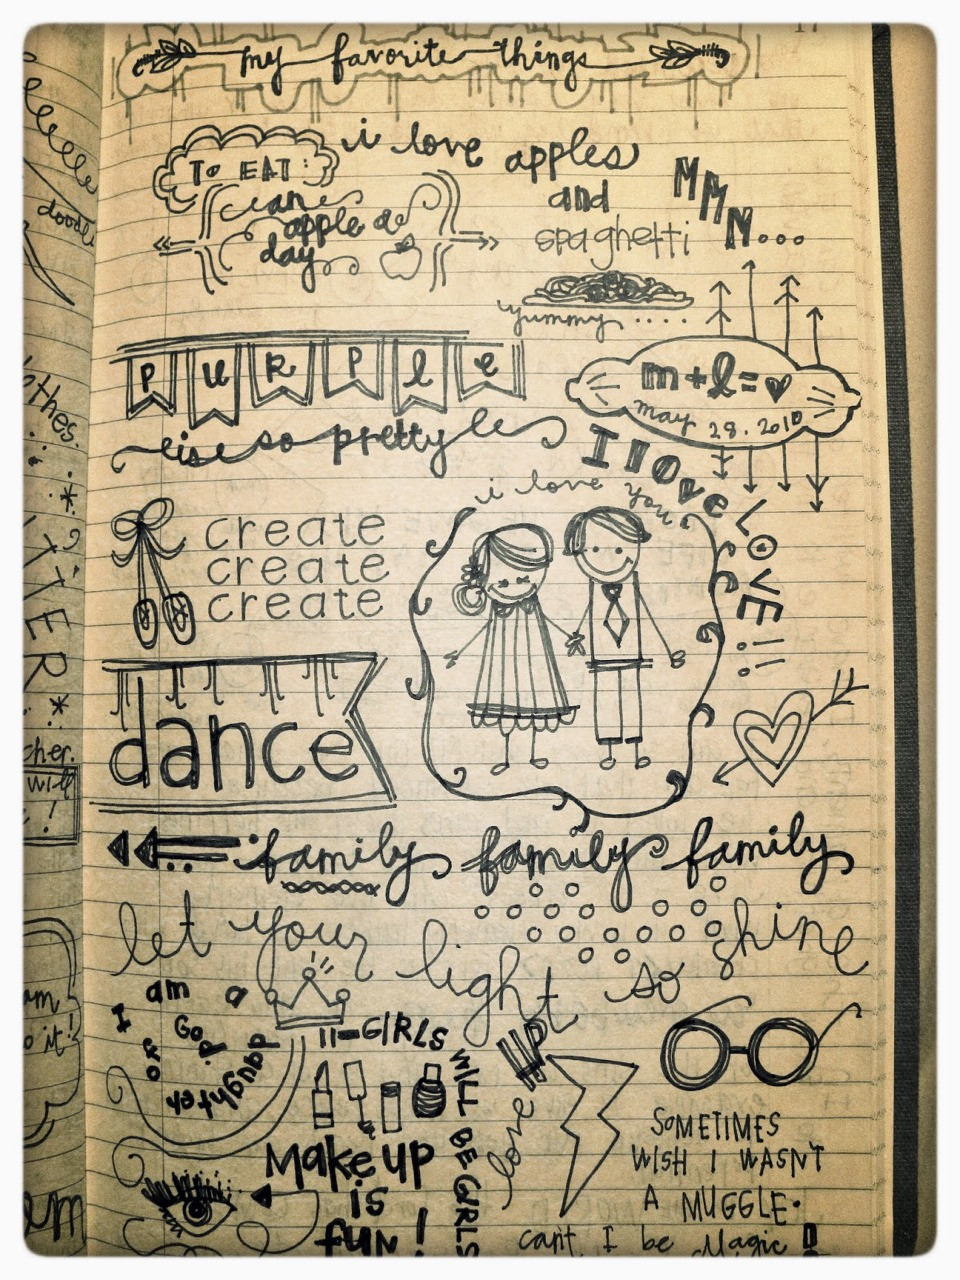 Make it creative! Add writing and a little art! If you can't draw, glue or tape in pictures.